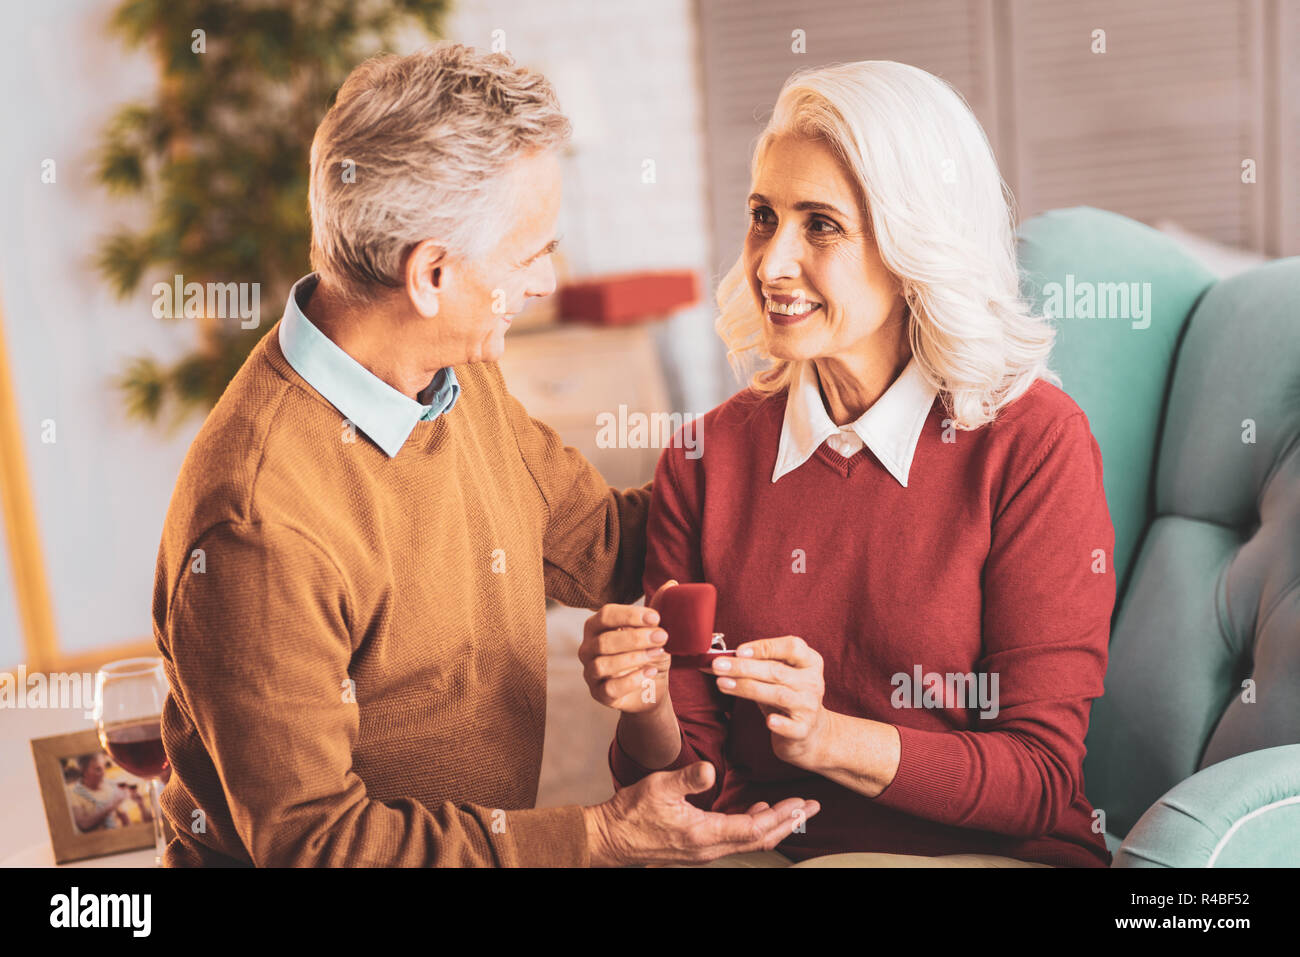 Caring husband. Caring elderly husband feeling respected while hugging his beautiful smiling wife Stock Photo